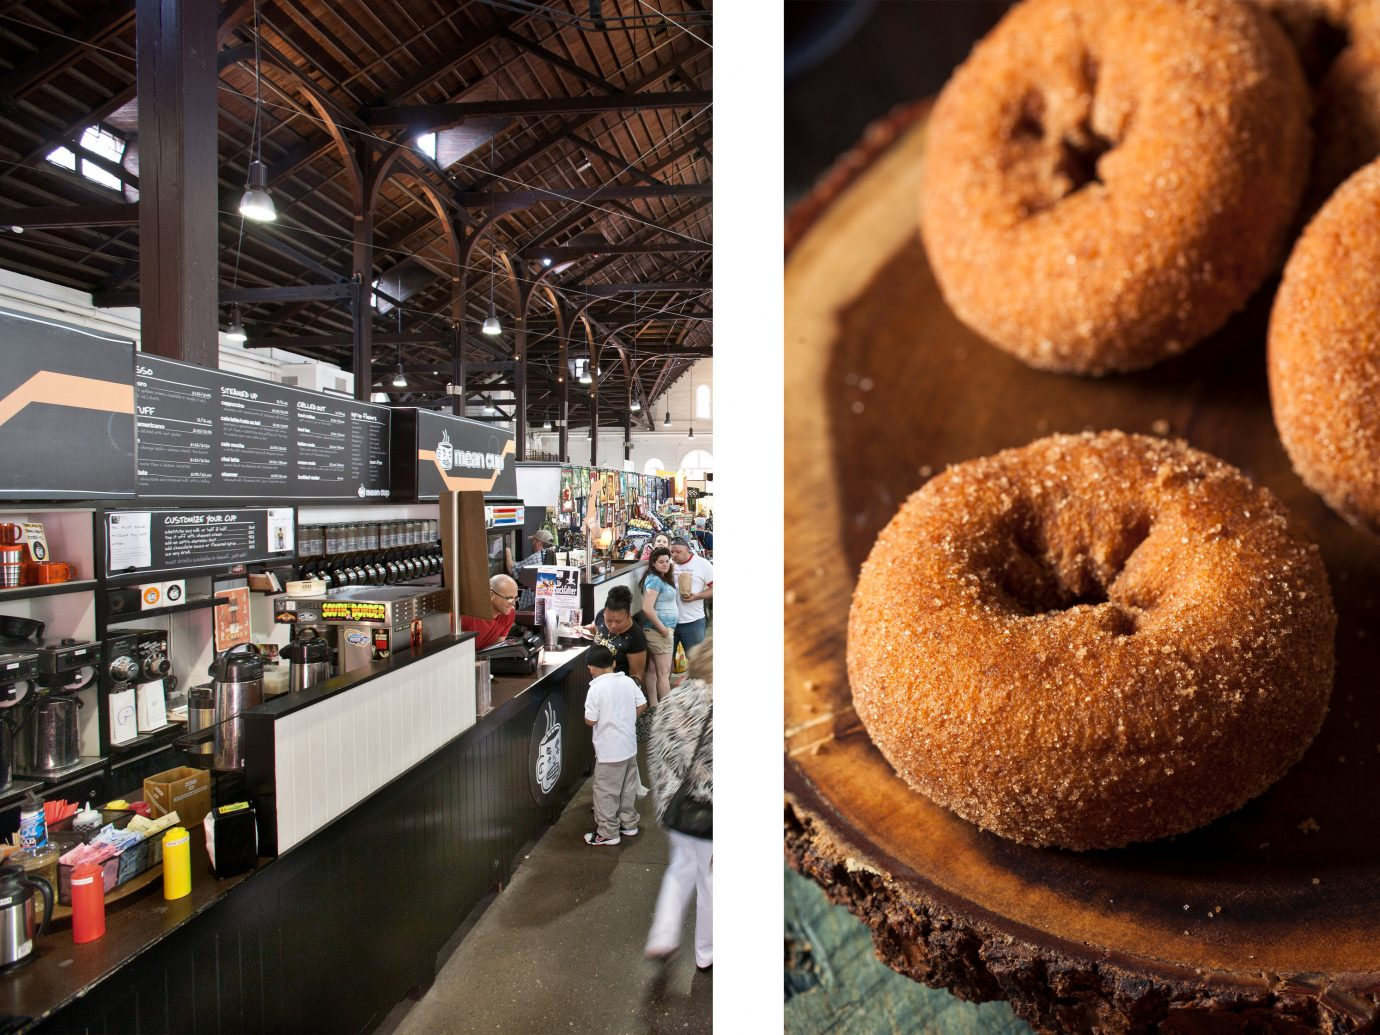 Food + Drink doughnut indoor food bakery baking dessert donut several